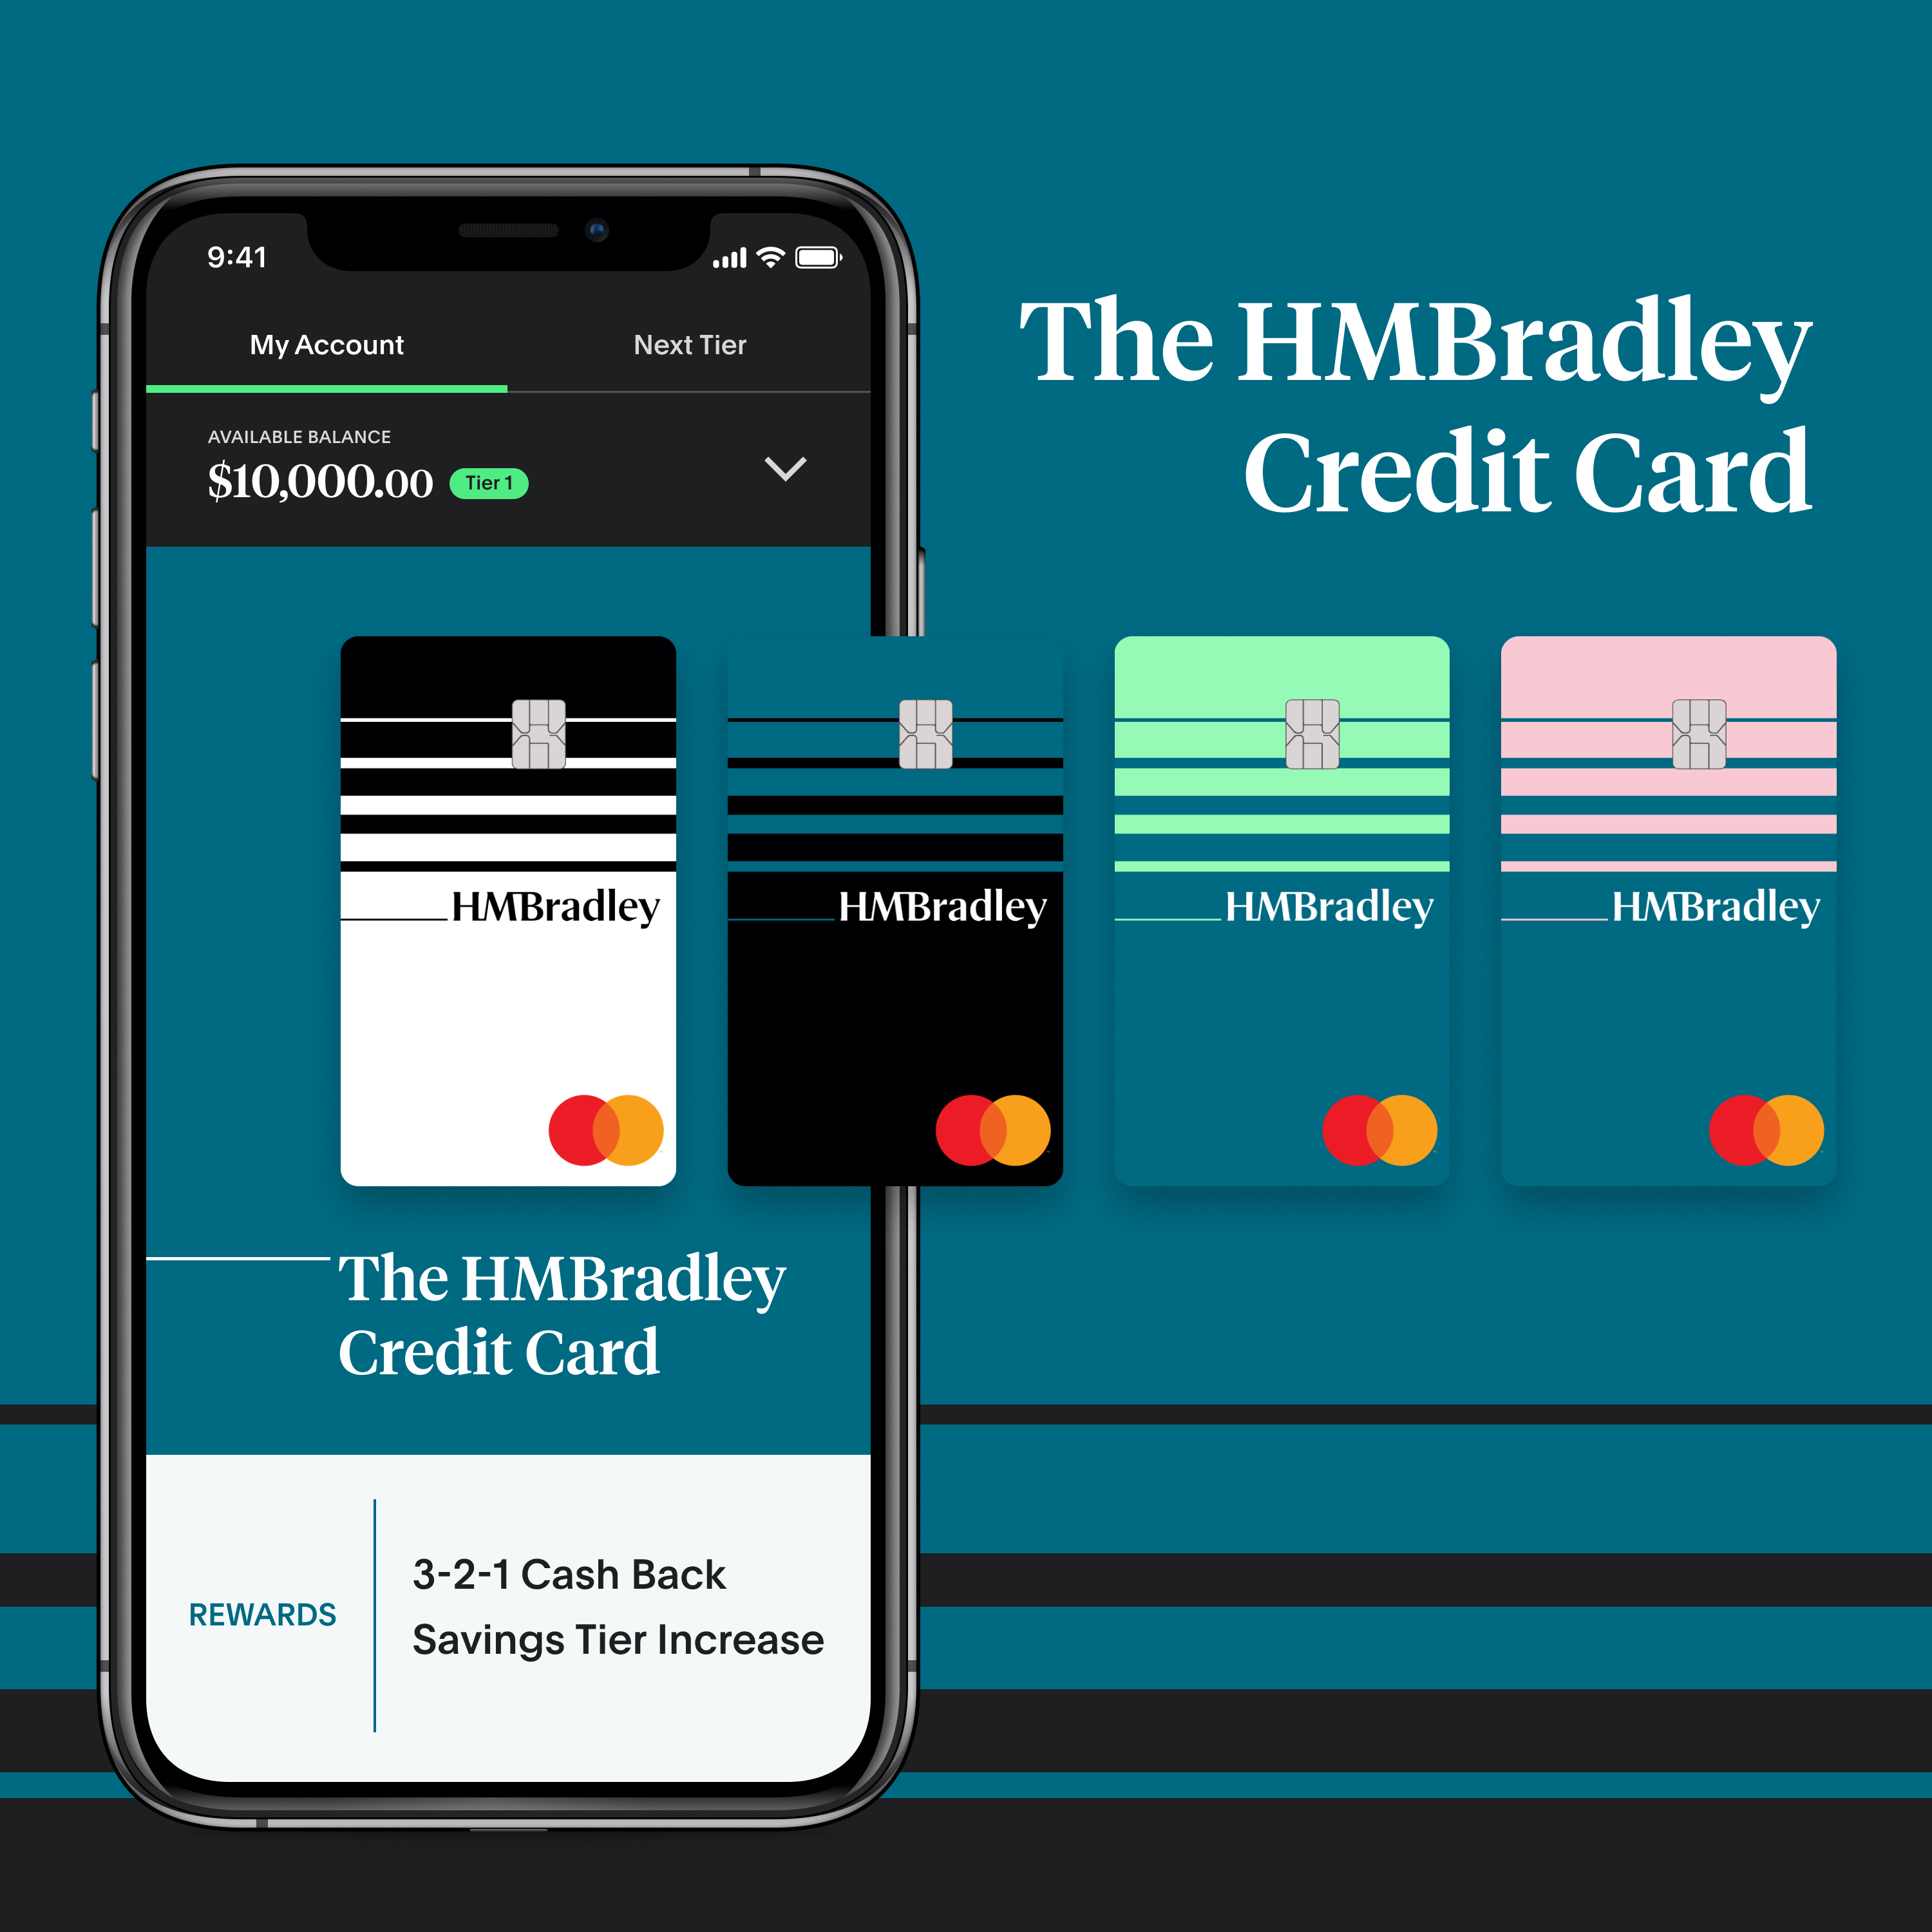 HMBradley Debuts Credit Card That Offers Up to 12% Cashback with